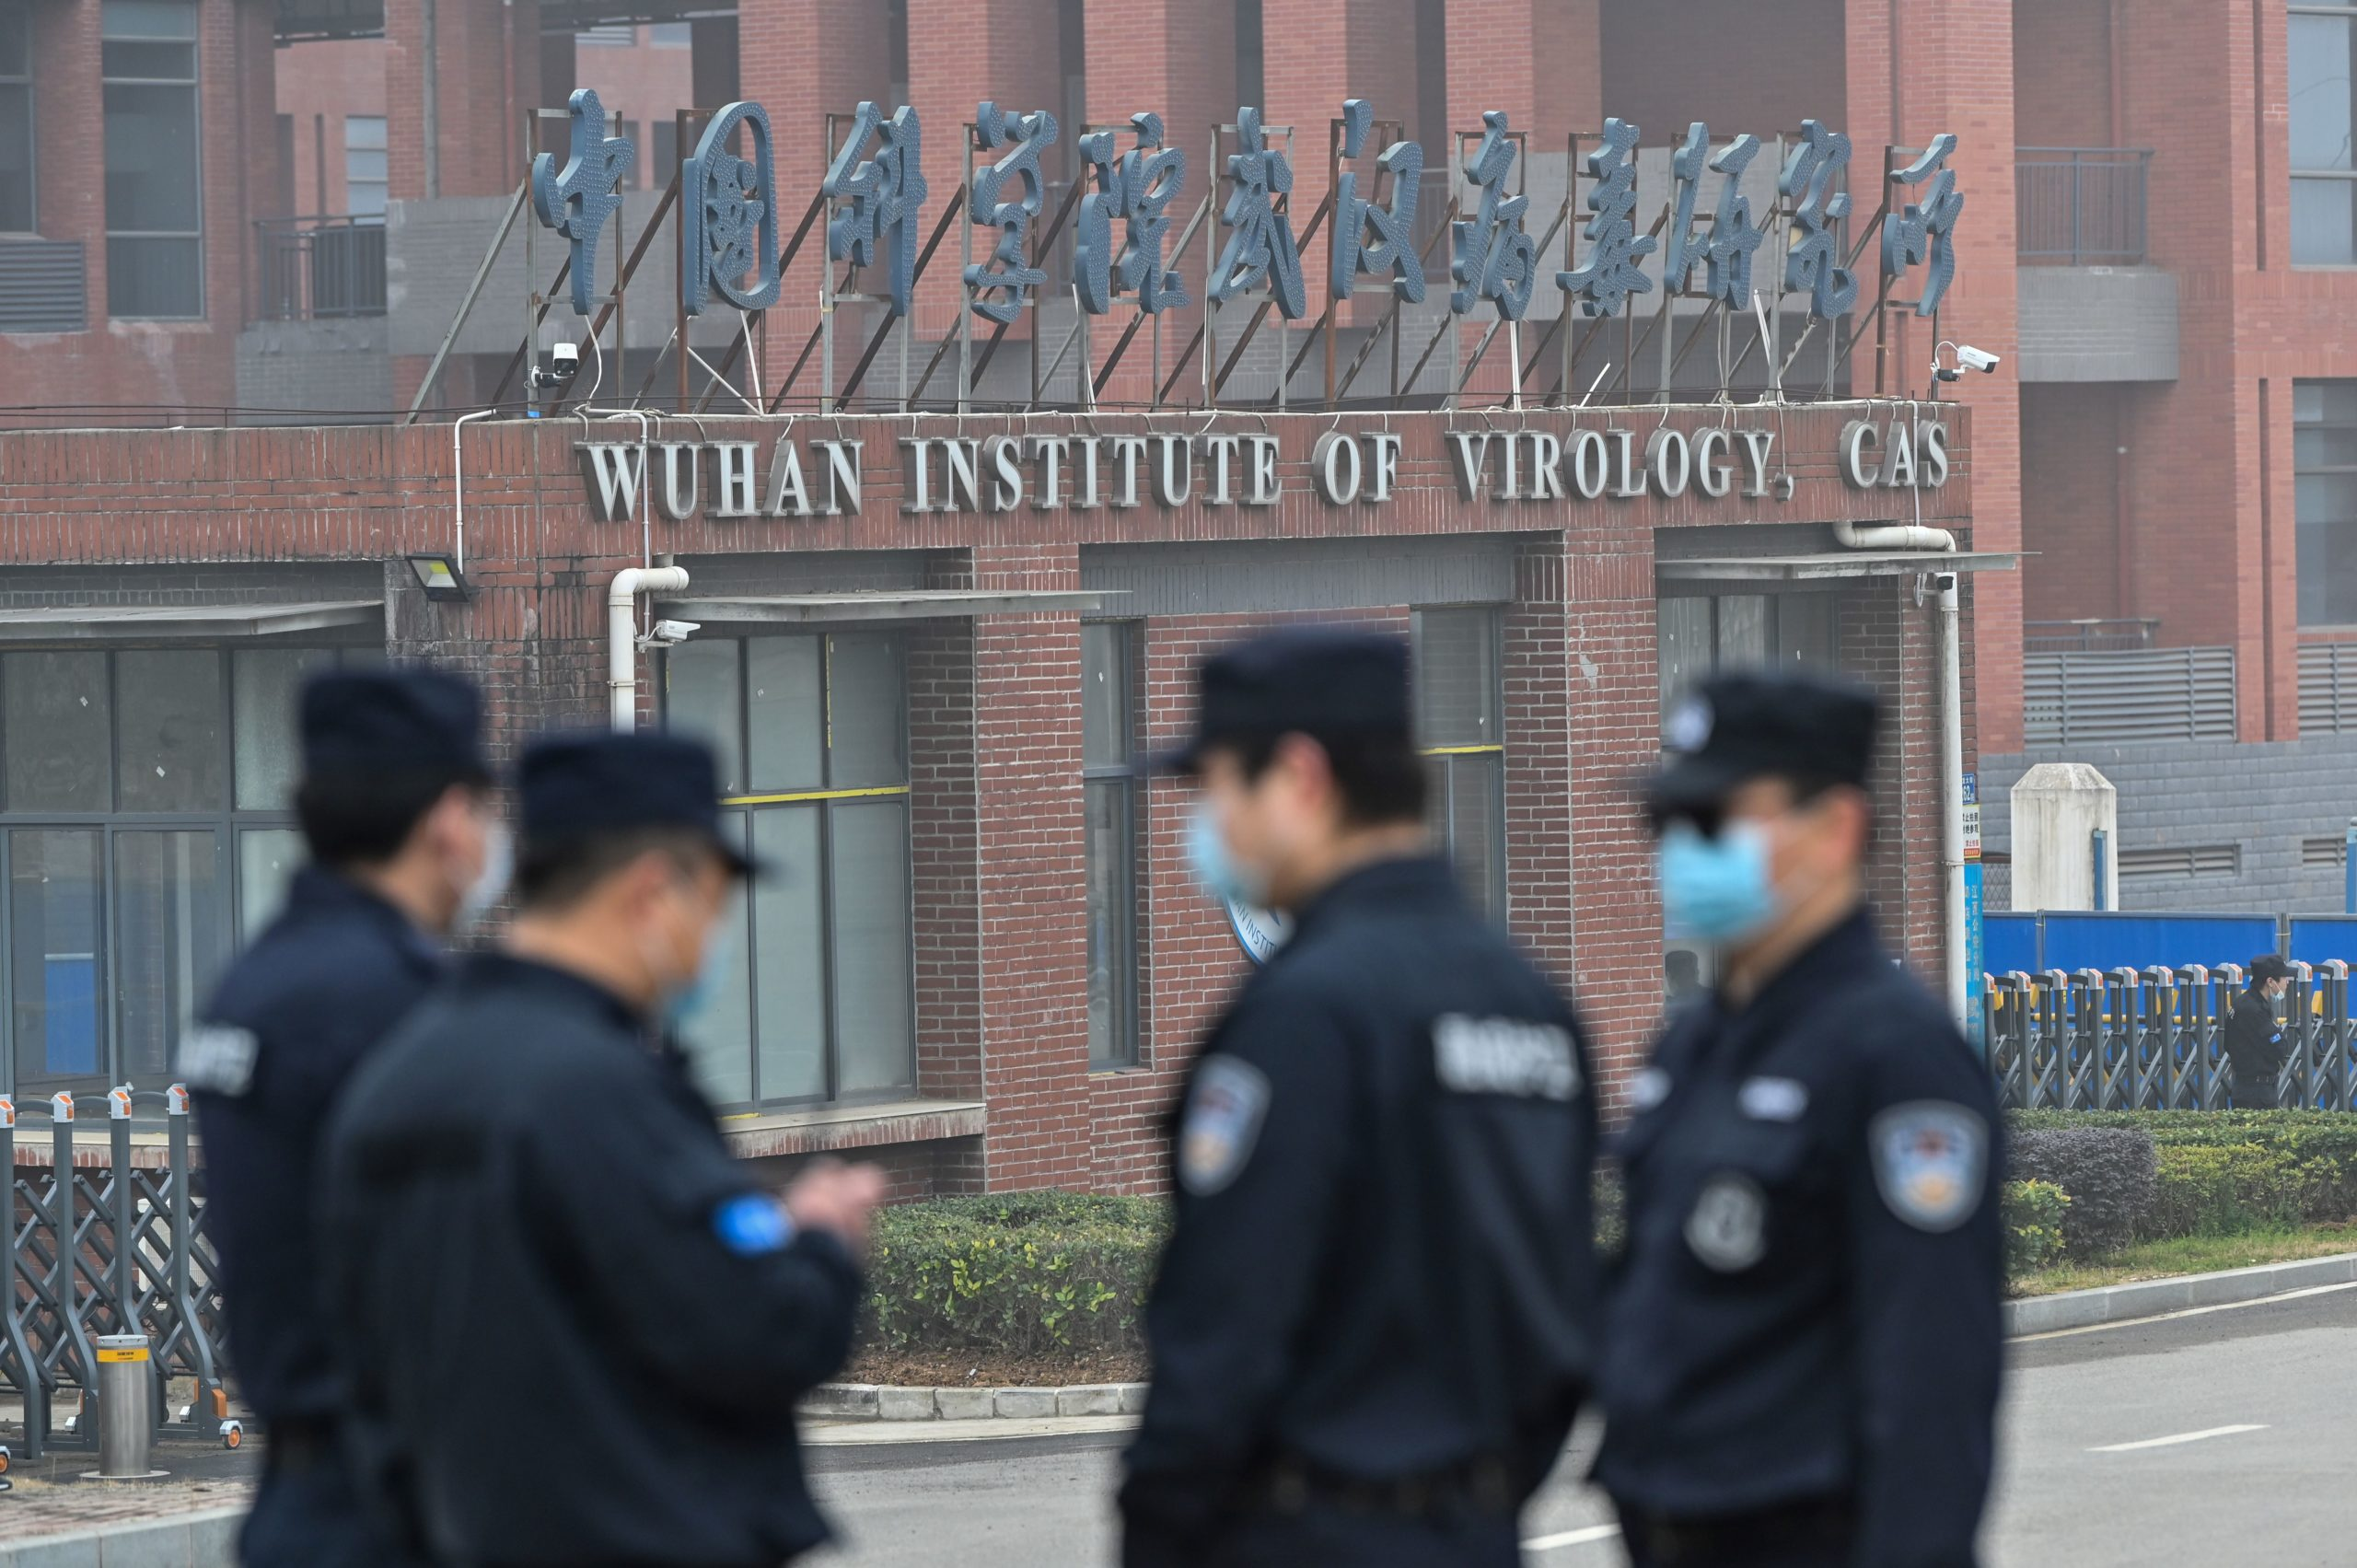 Security personnel stand guard outside the Wuhan Institute of Virology in Wuhan as members of the World Health Organization (WHO) team investigating the origins of the COVID-19 coronavirus make a visit to the institute in Wuhan in China's central Hubei province on February 3, 2021. (Photo by Hector RETAMAL / AFP) (Photo by HECTOR RETAMAL/AFP via Getty Images)